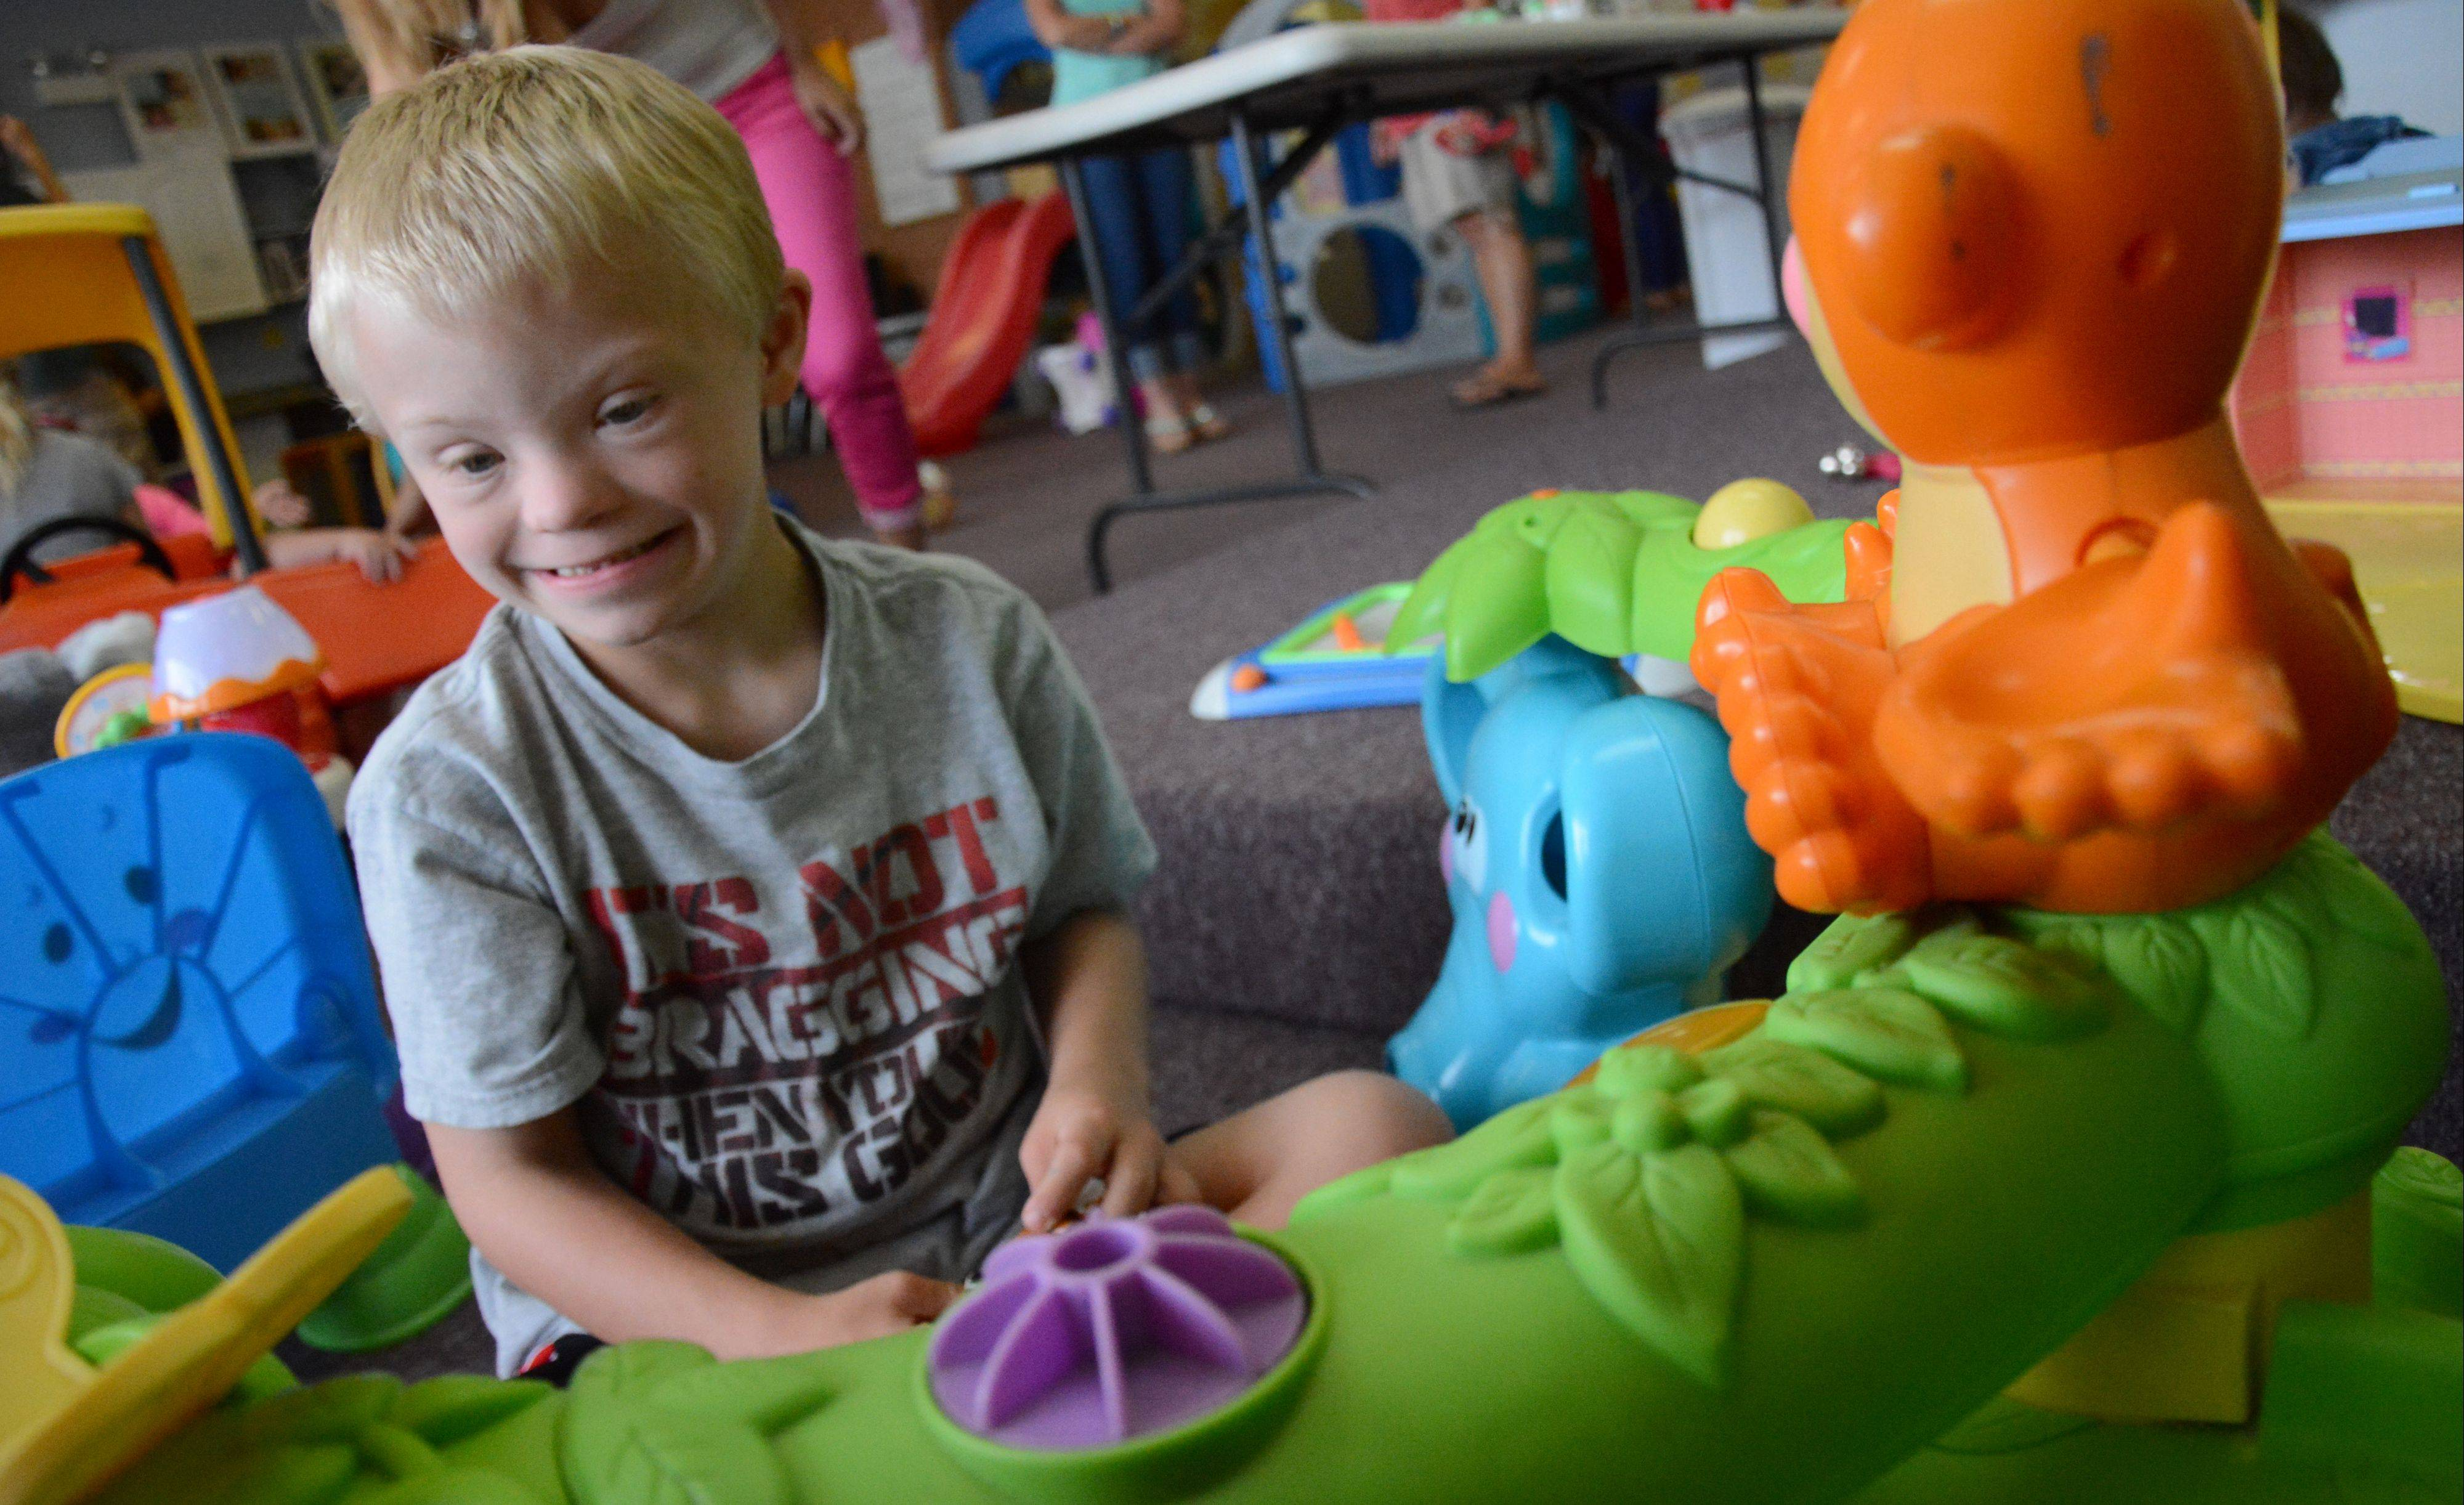 Cody Huston, 6, of Naperville plays with a toy during open playtime at GiGi's Playhouse in Hoffman Estates.To accommodate growing interest in GiGi's Playhouses across the nation, a National Achievement Center is being built.